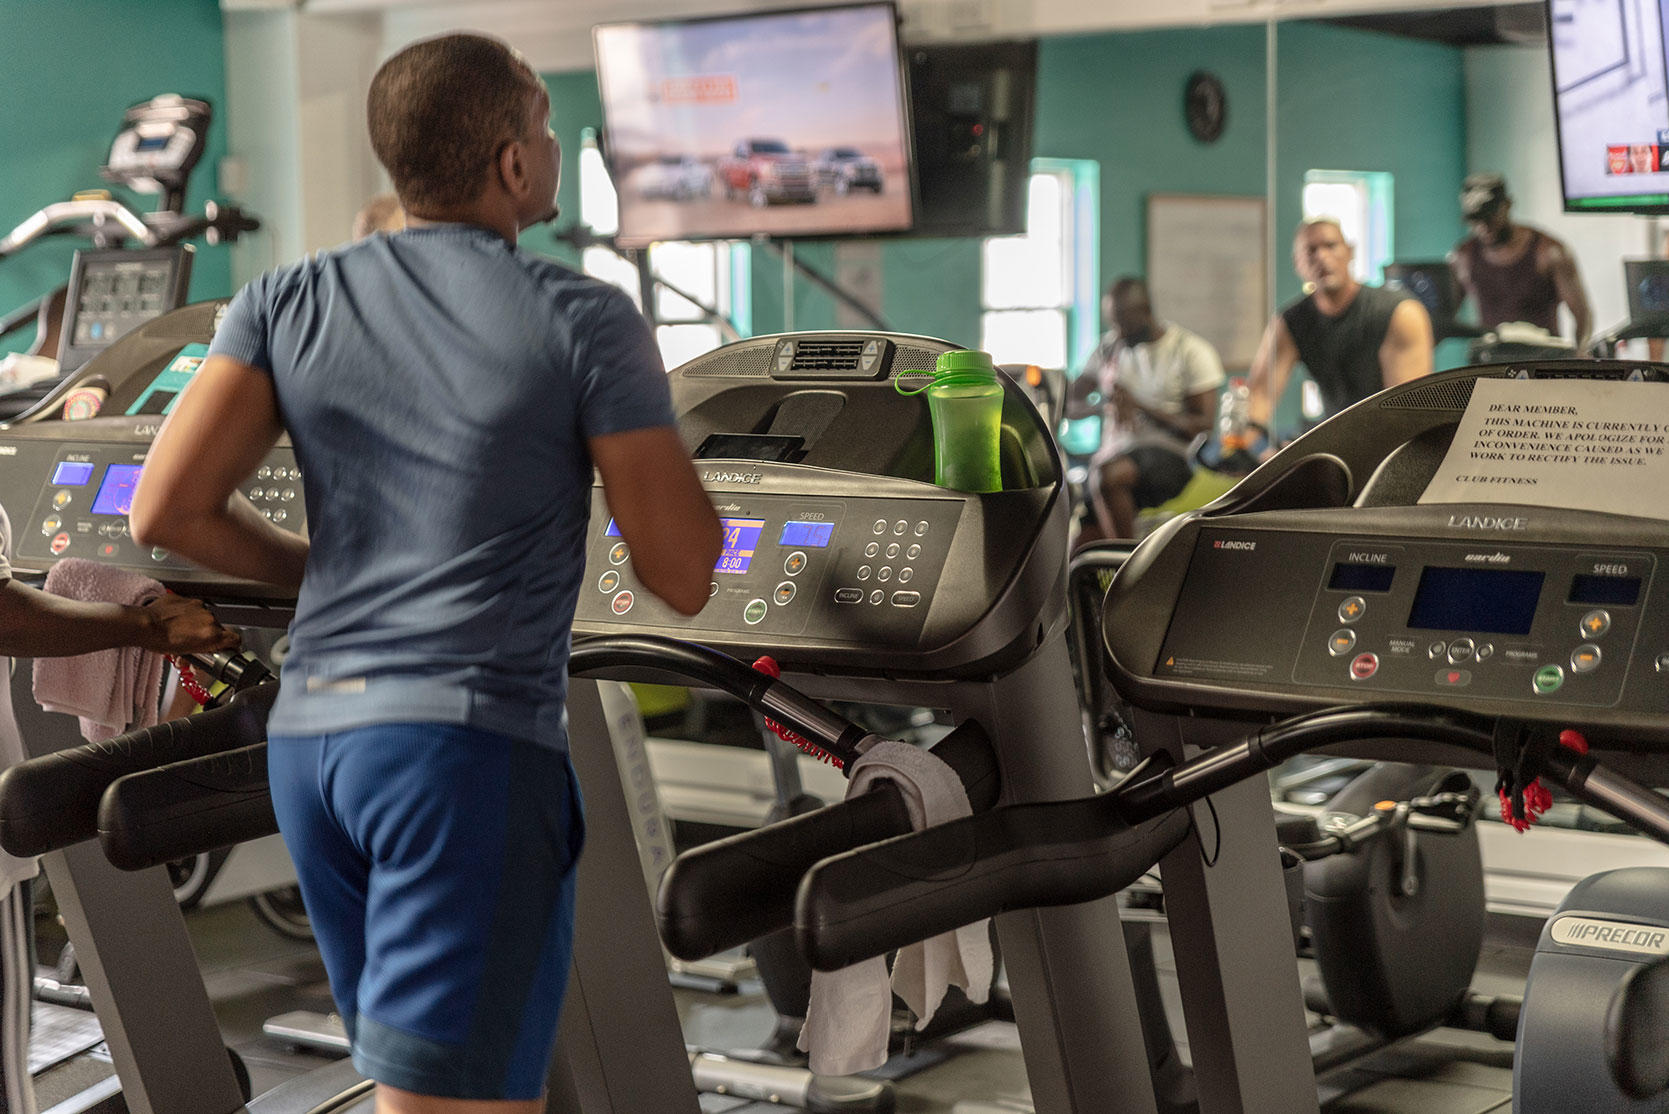 Man running on treadmill in fitness center